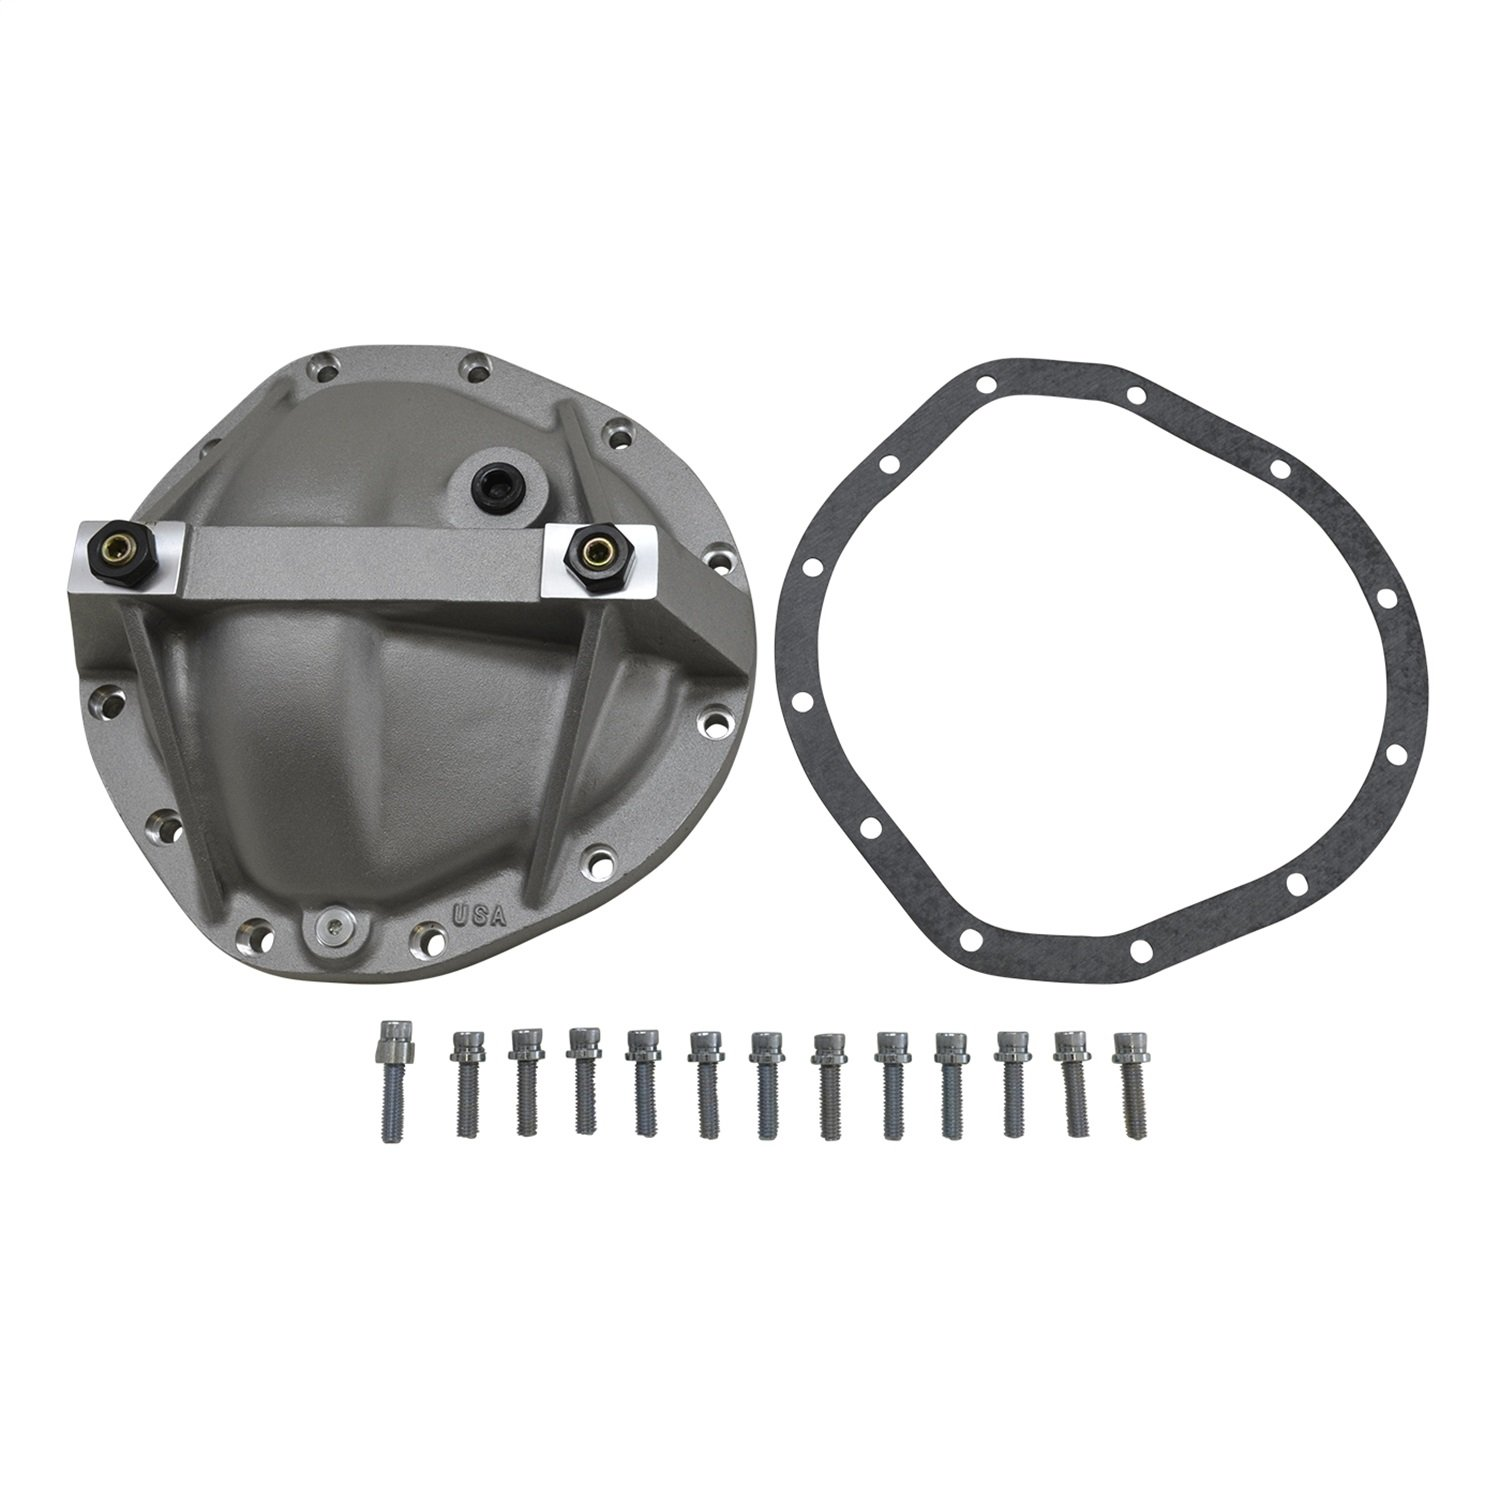 Yukon (YP C3-GM12T) Aluminum Replacement Girdle Cover for GM 12-Bolt Truck TA HD Differential